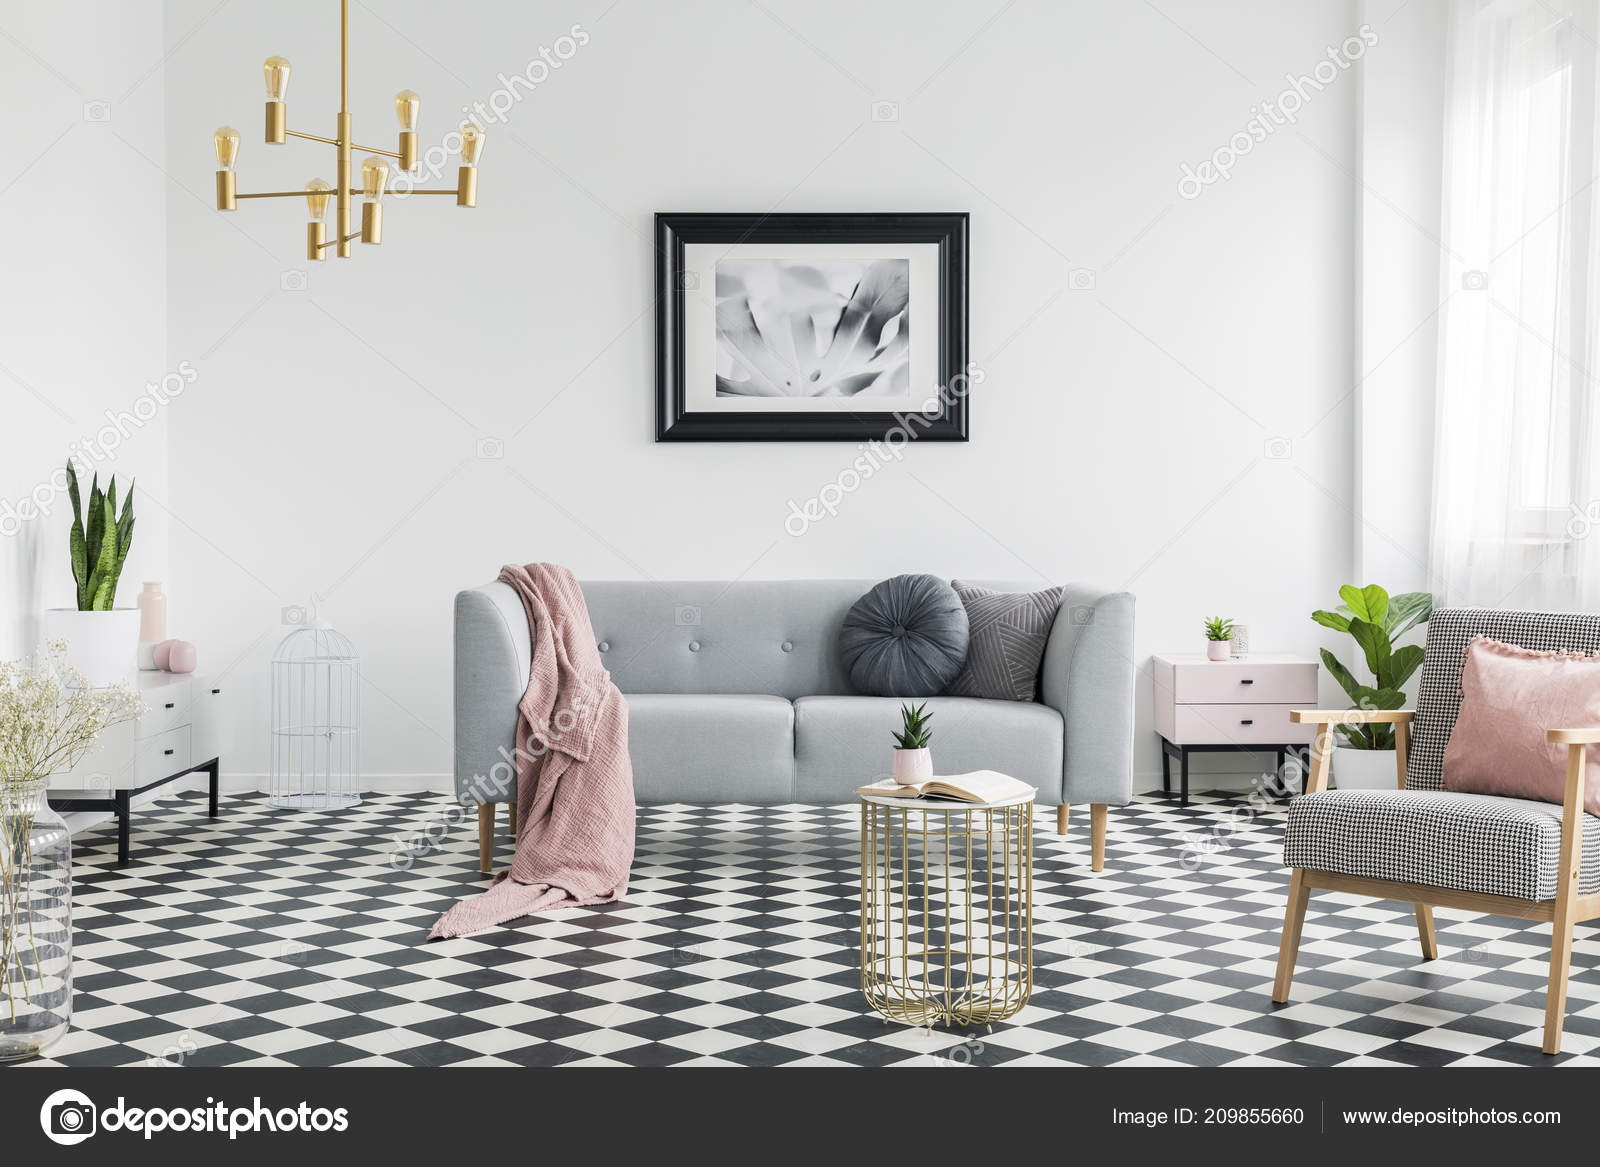 Incredible Pink Blanket Pillows Grey Couch White Living Room Interior Andrewgaddart Wooden Chair Designs For Living Room Andrewgaddartcom